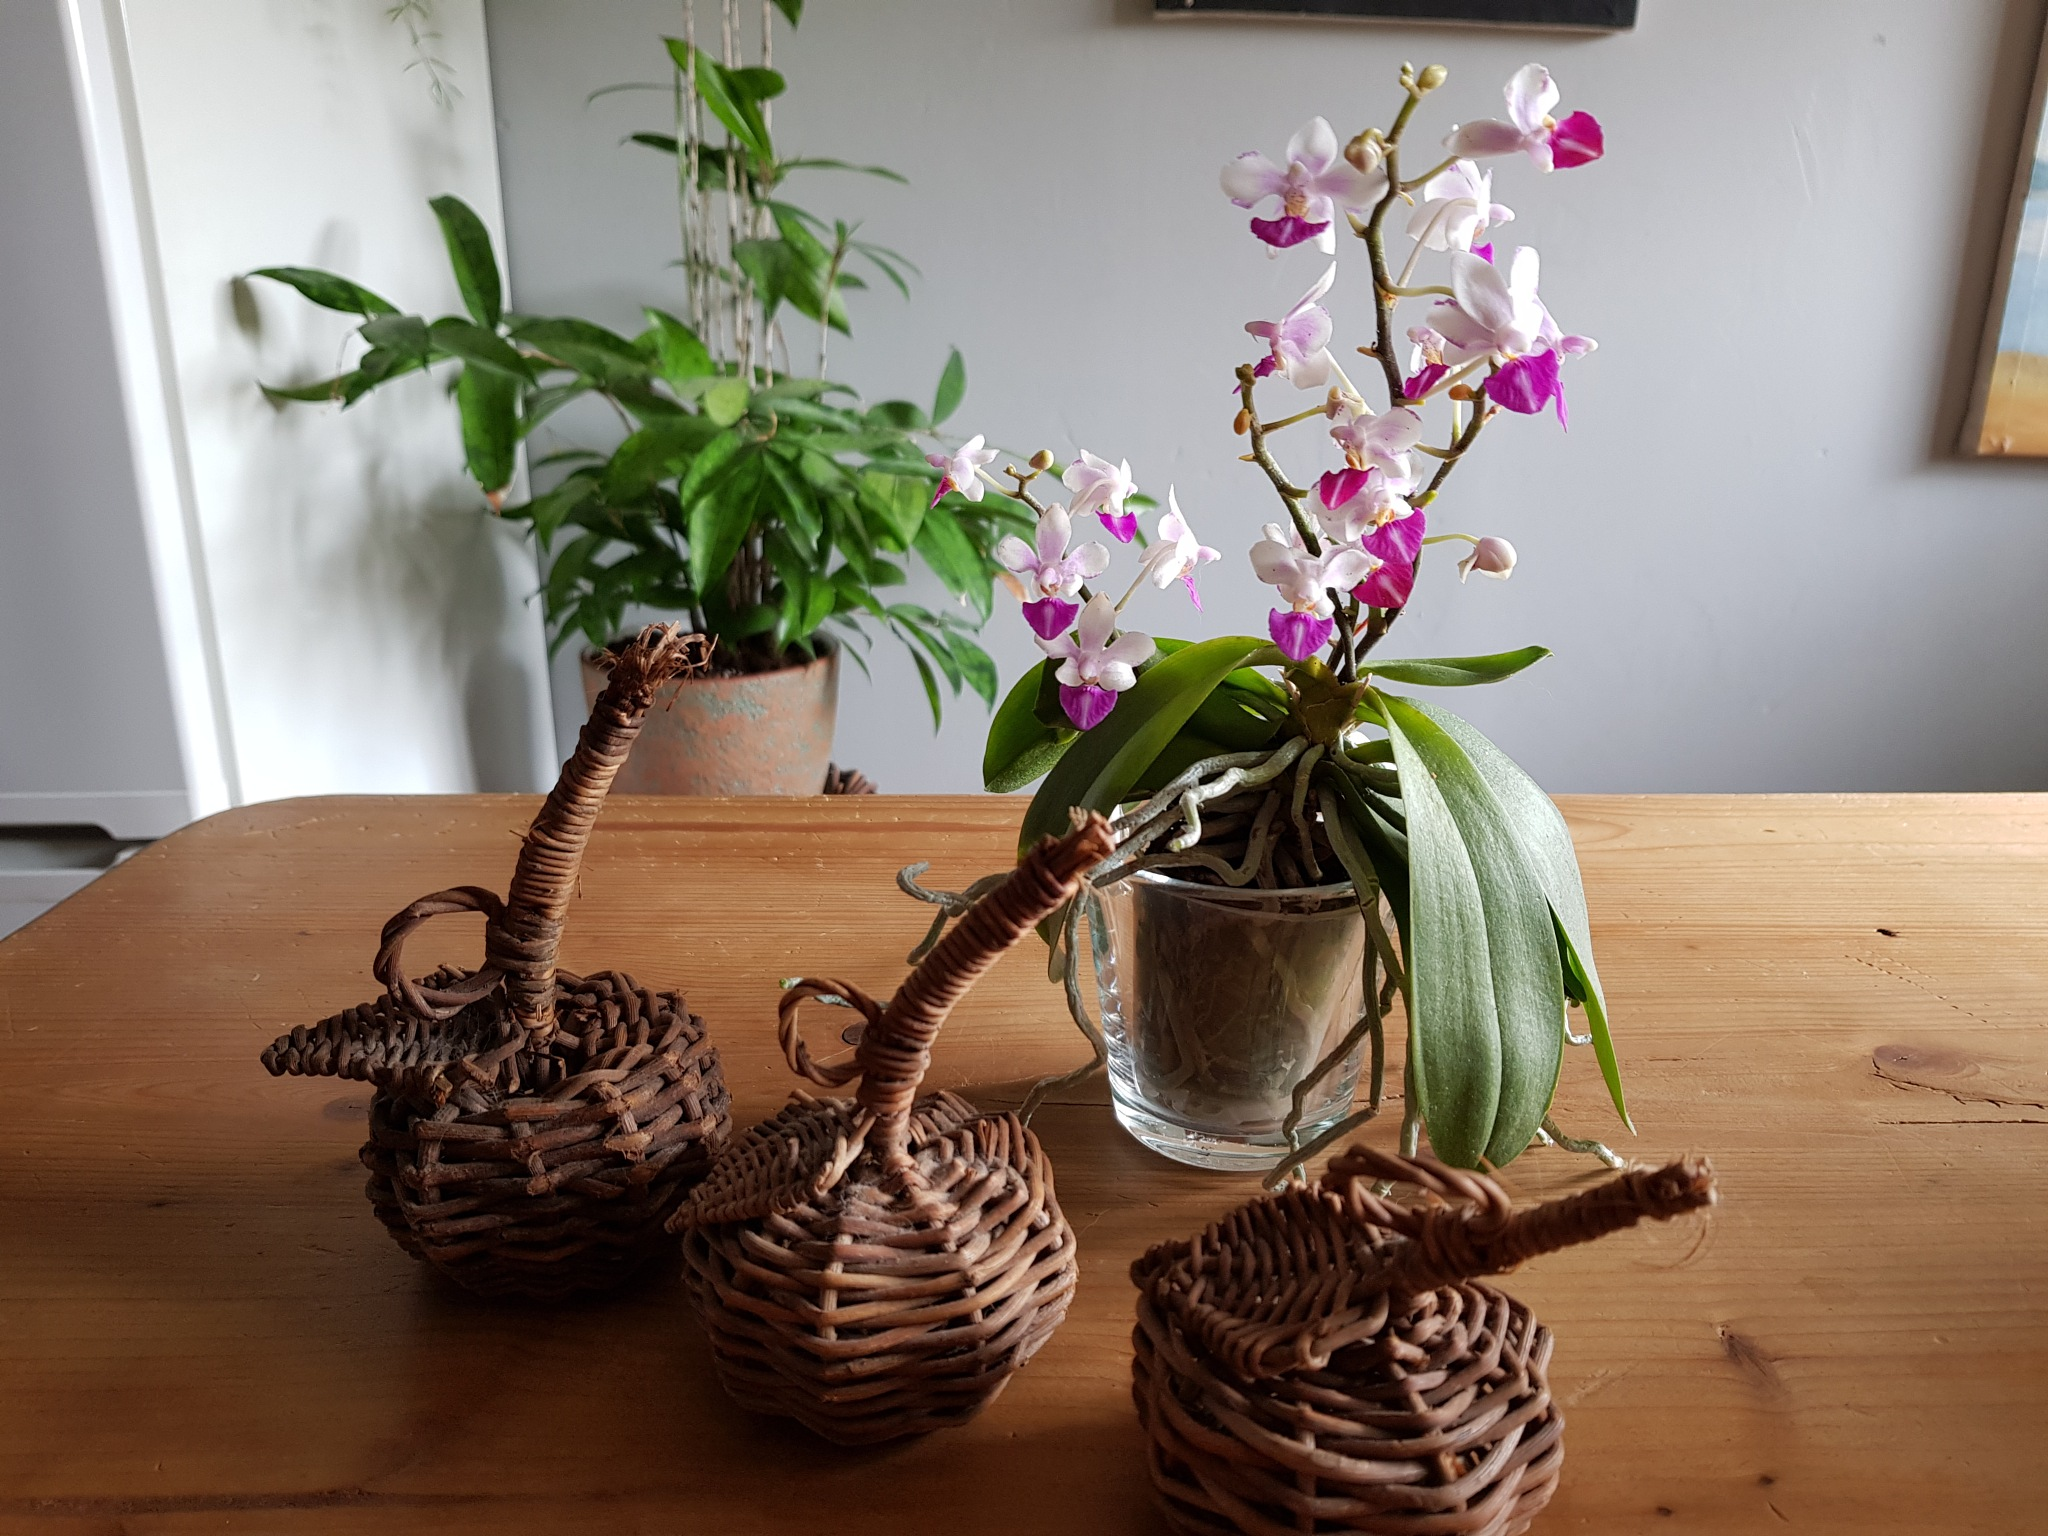 the little Orchids 1 by Justmetoo